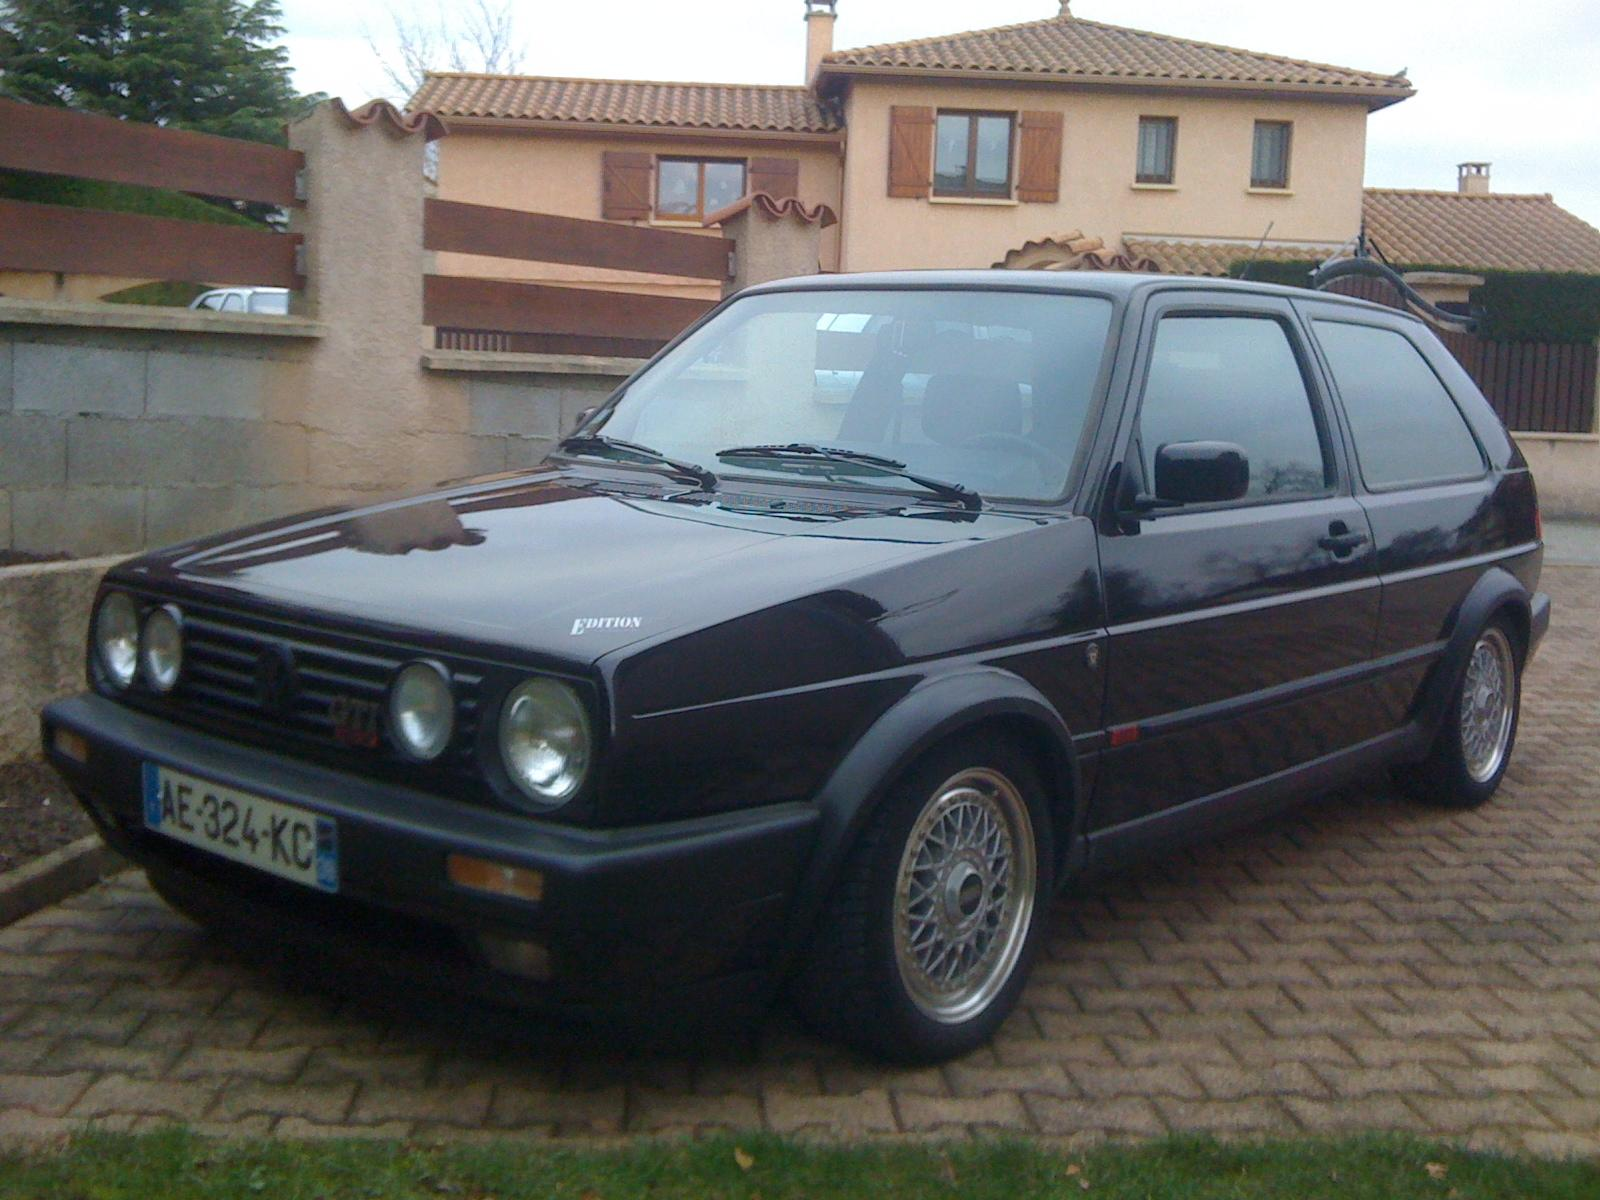 vw golf 2 gti 16s edition one 1991 autres v a g forum volkswagen golf iv. Black Bedroom Furniture Sets. Home Design Ideas